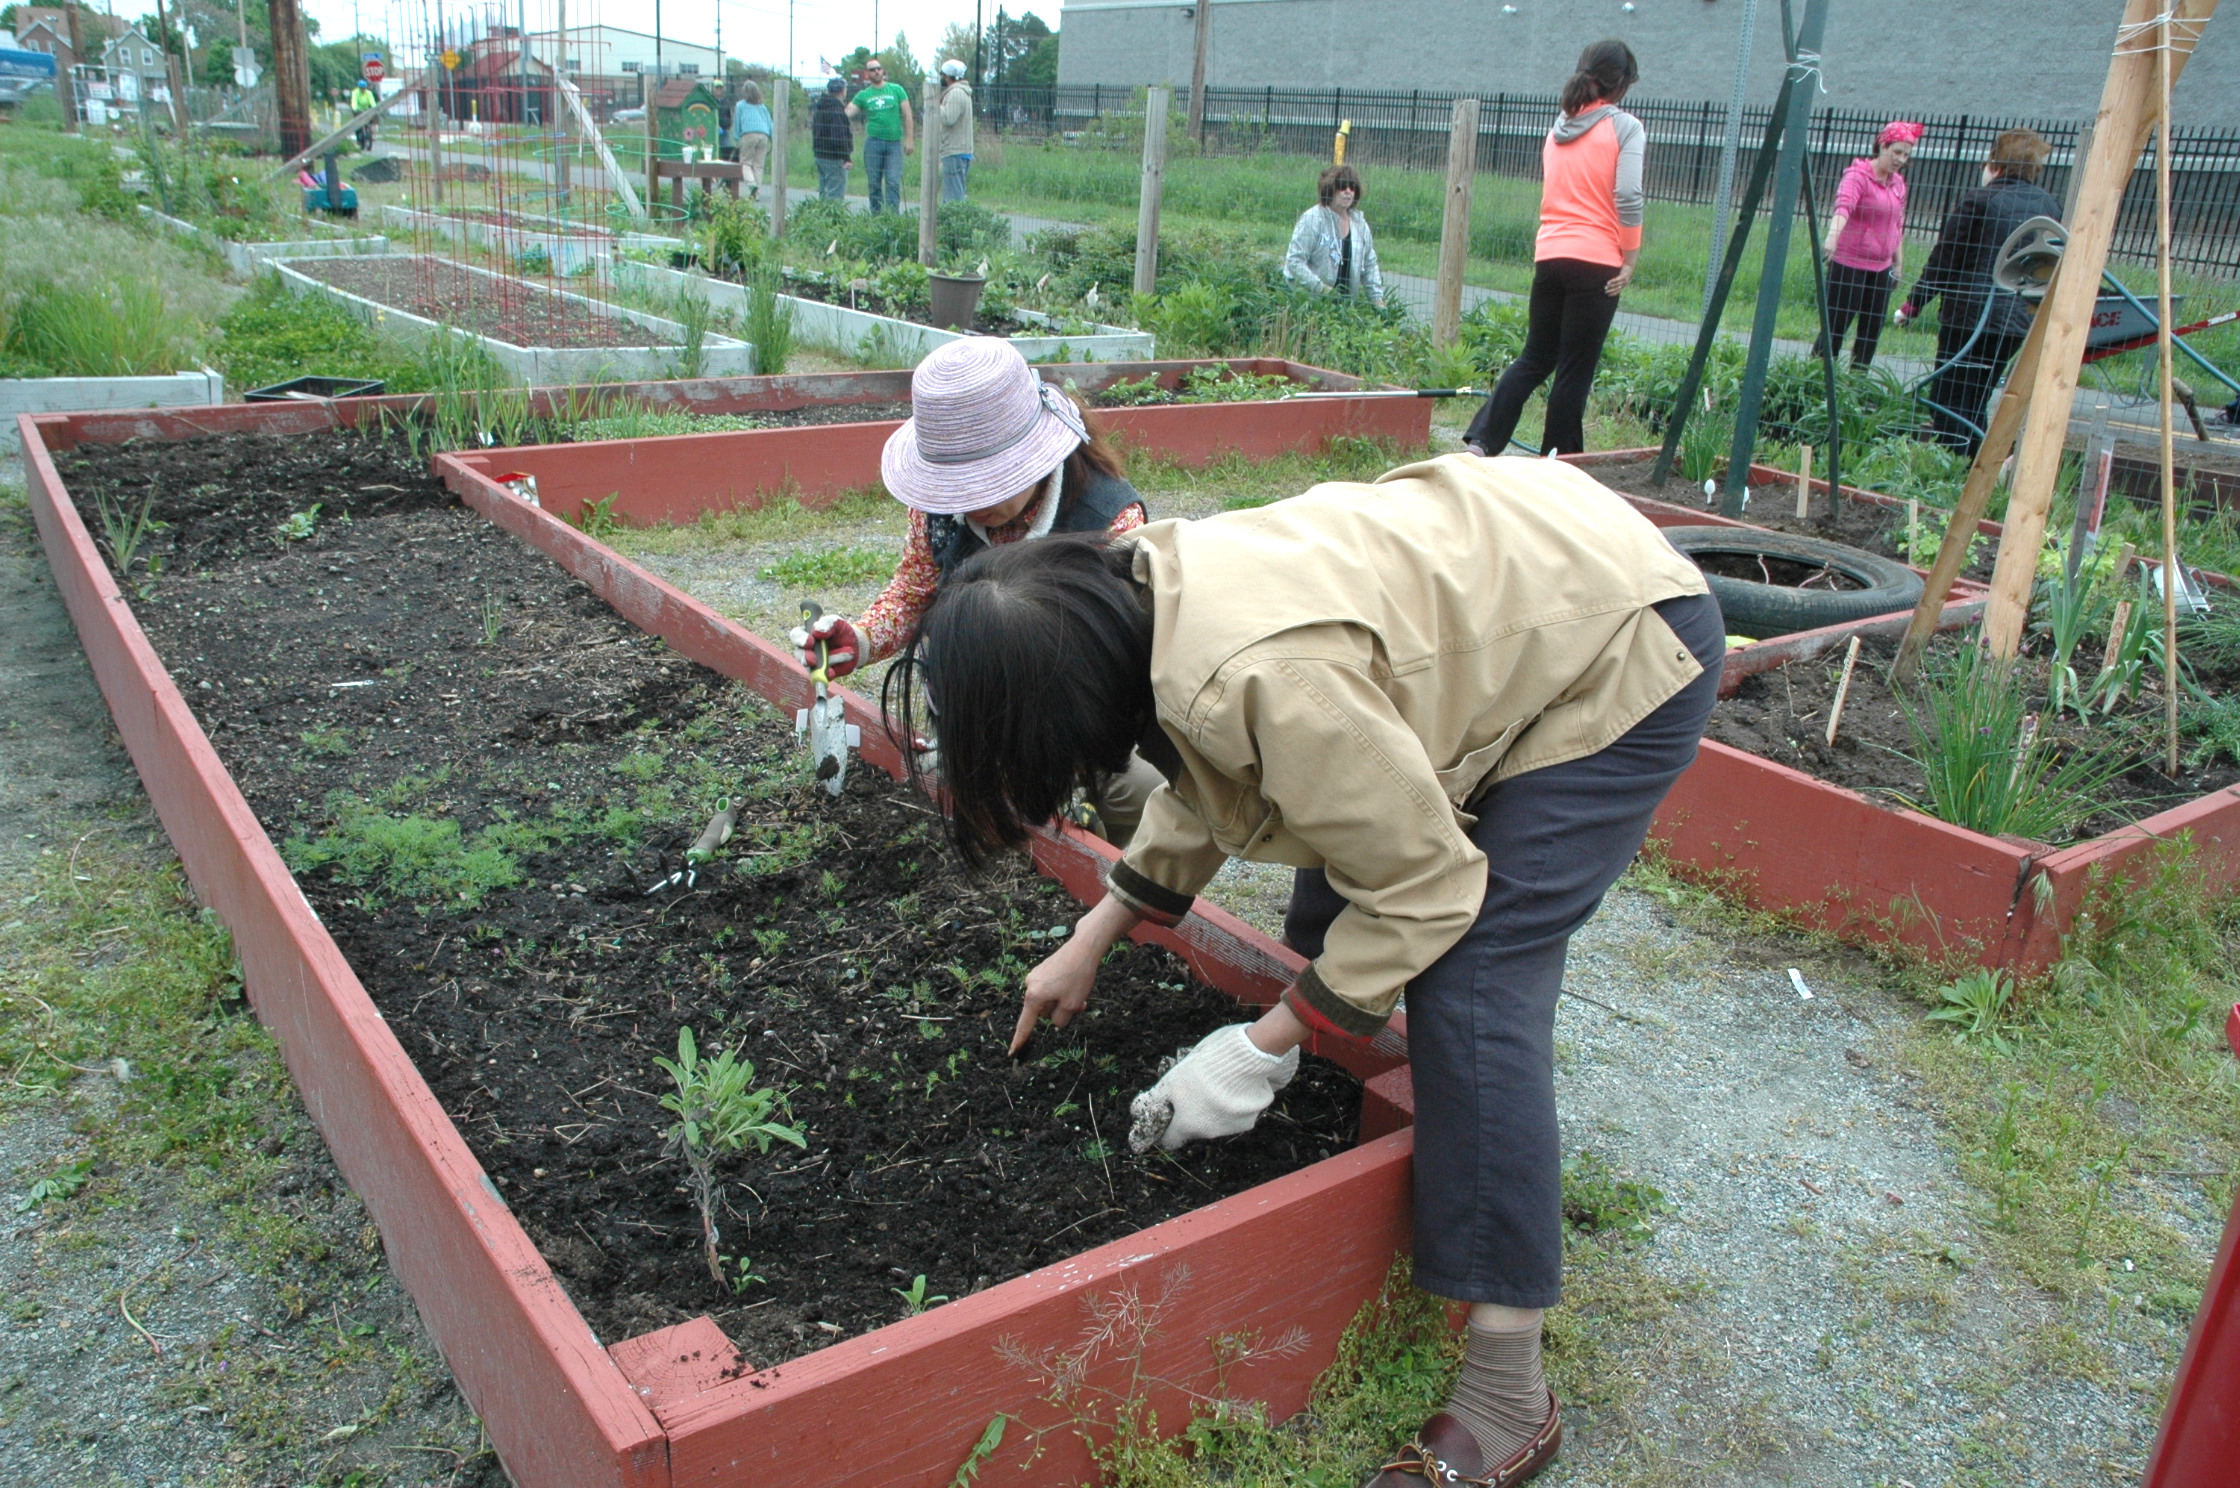 Let your garden grow: Season begins at the Malden Community Garden